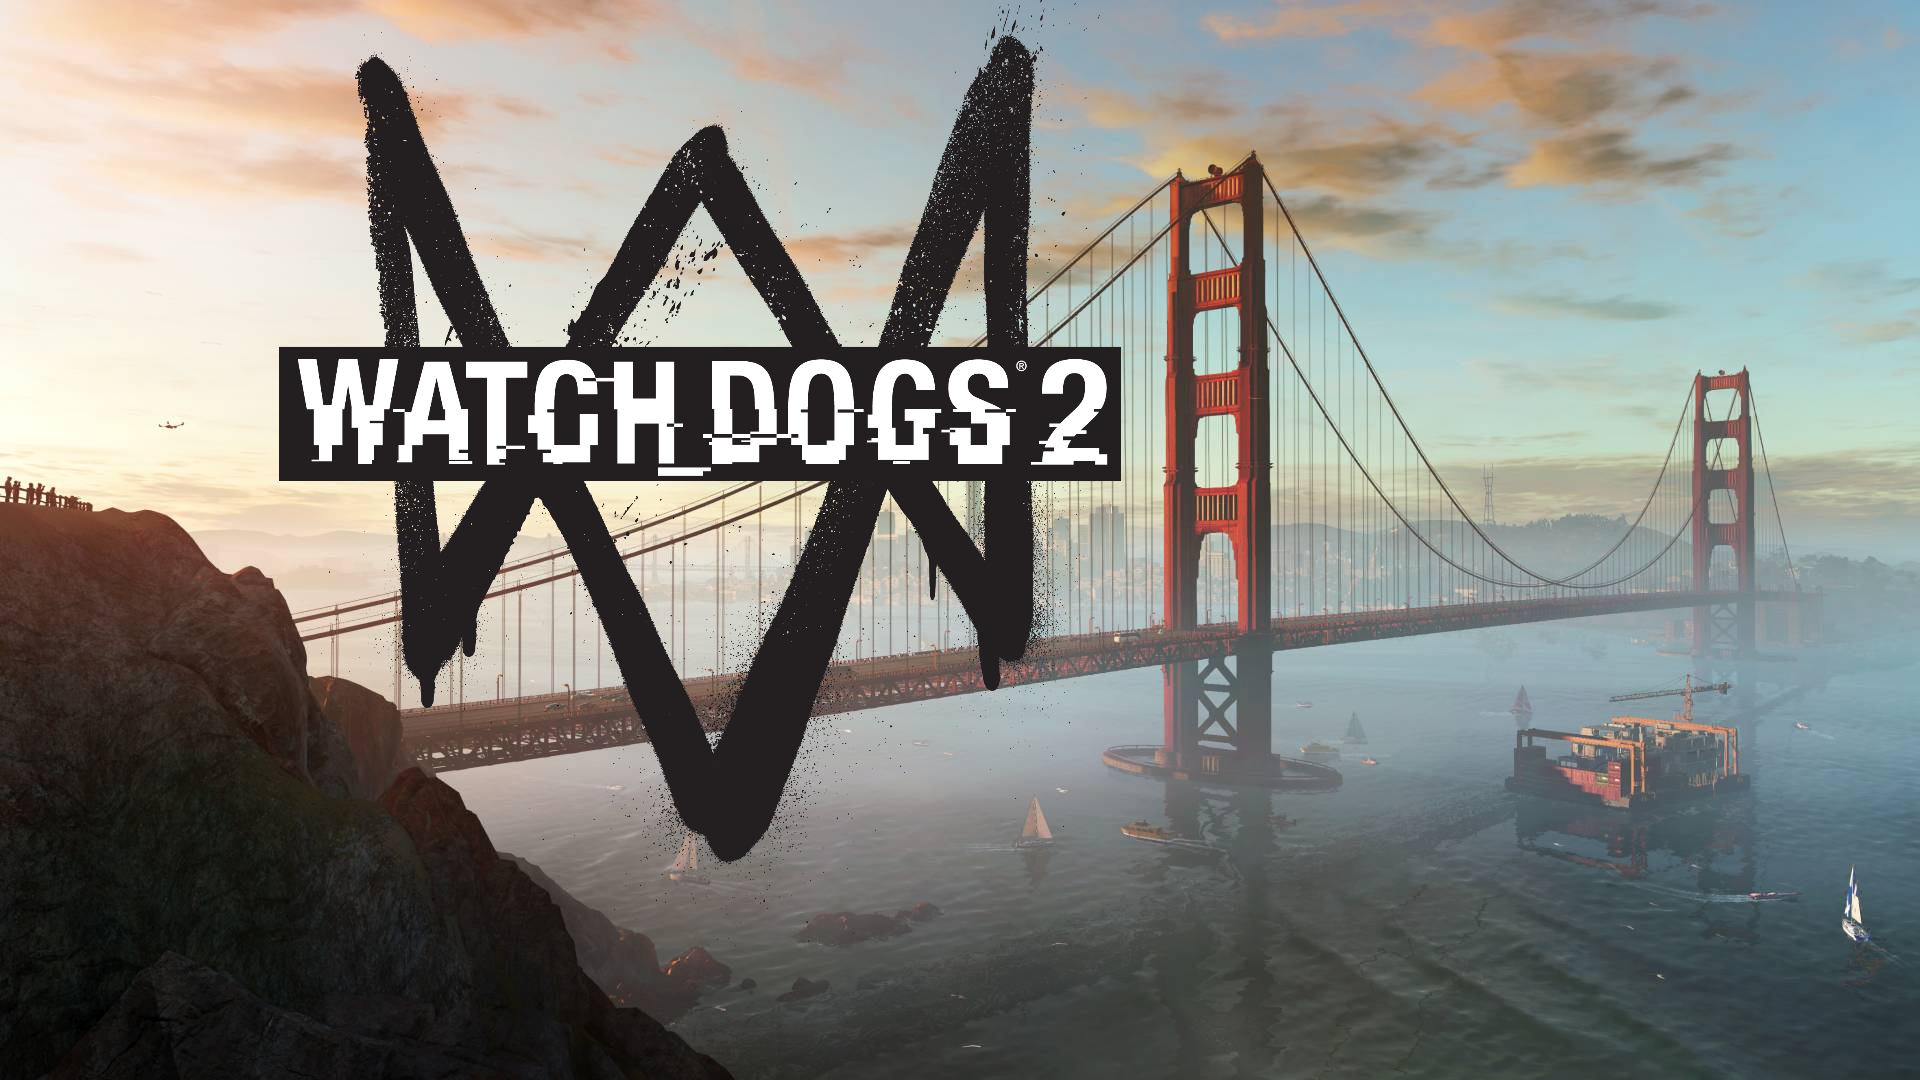 Watch Dogs 2 Wallpapers Images Photos Pictures Backgrounds